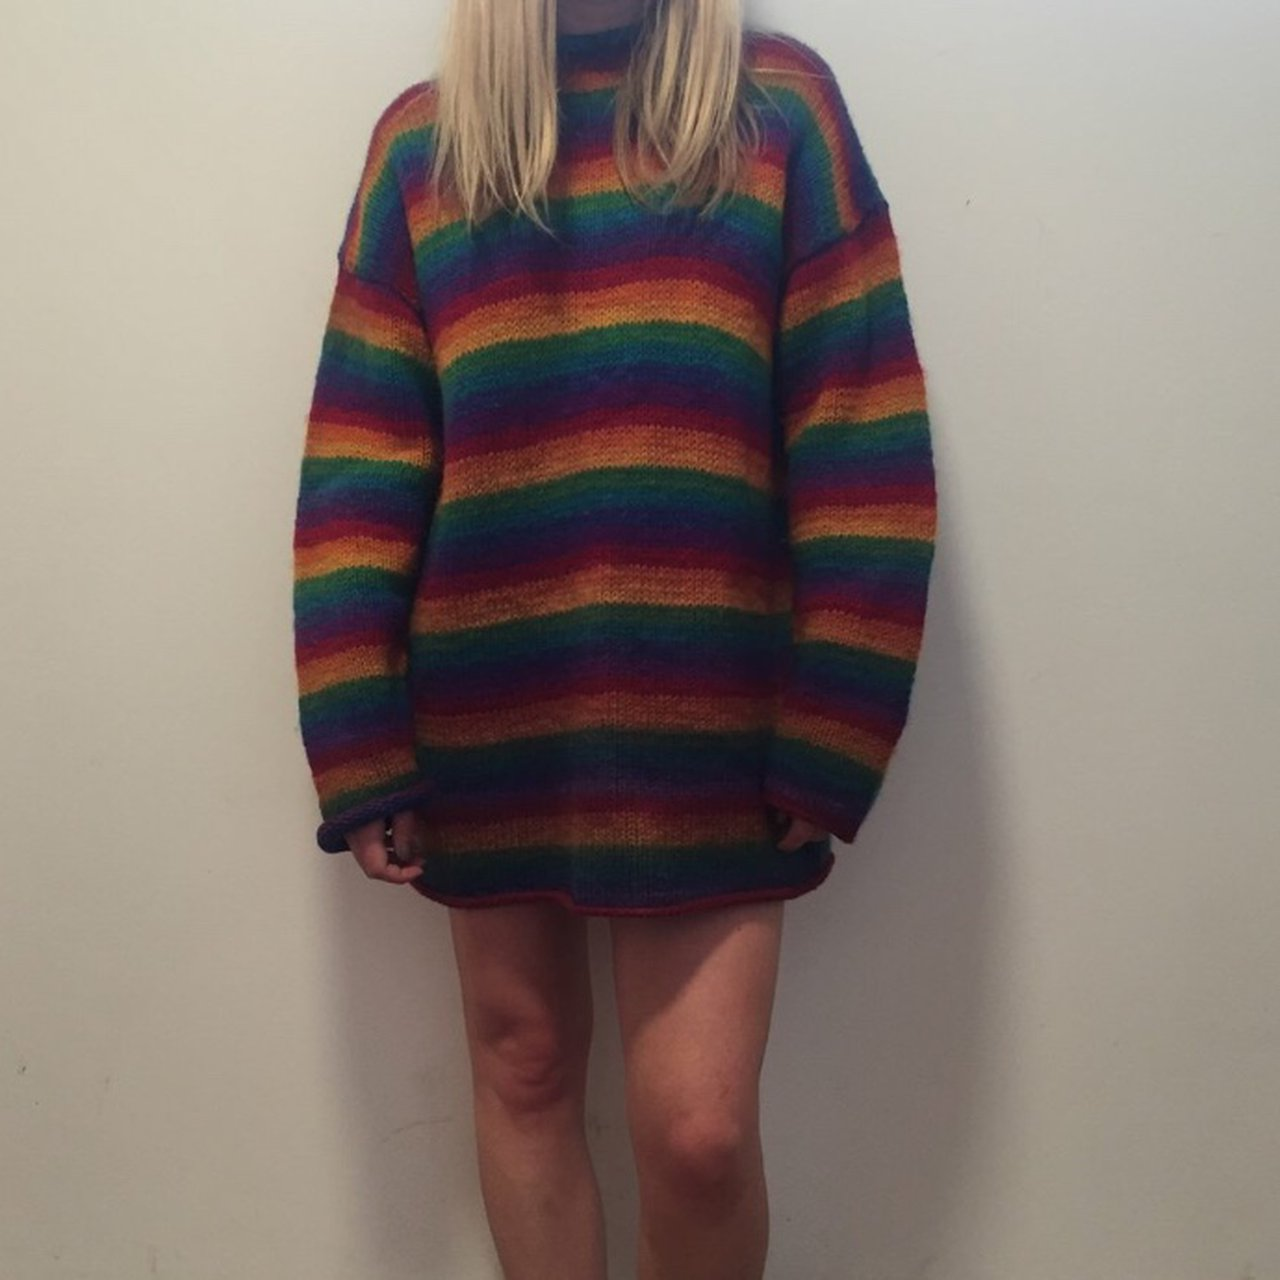 9d1e35e0a4 Amazing vintage rainbow stripe multicoloured 100% wool Looks - Depop